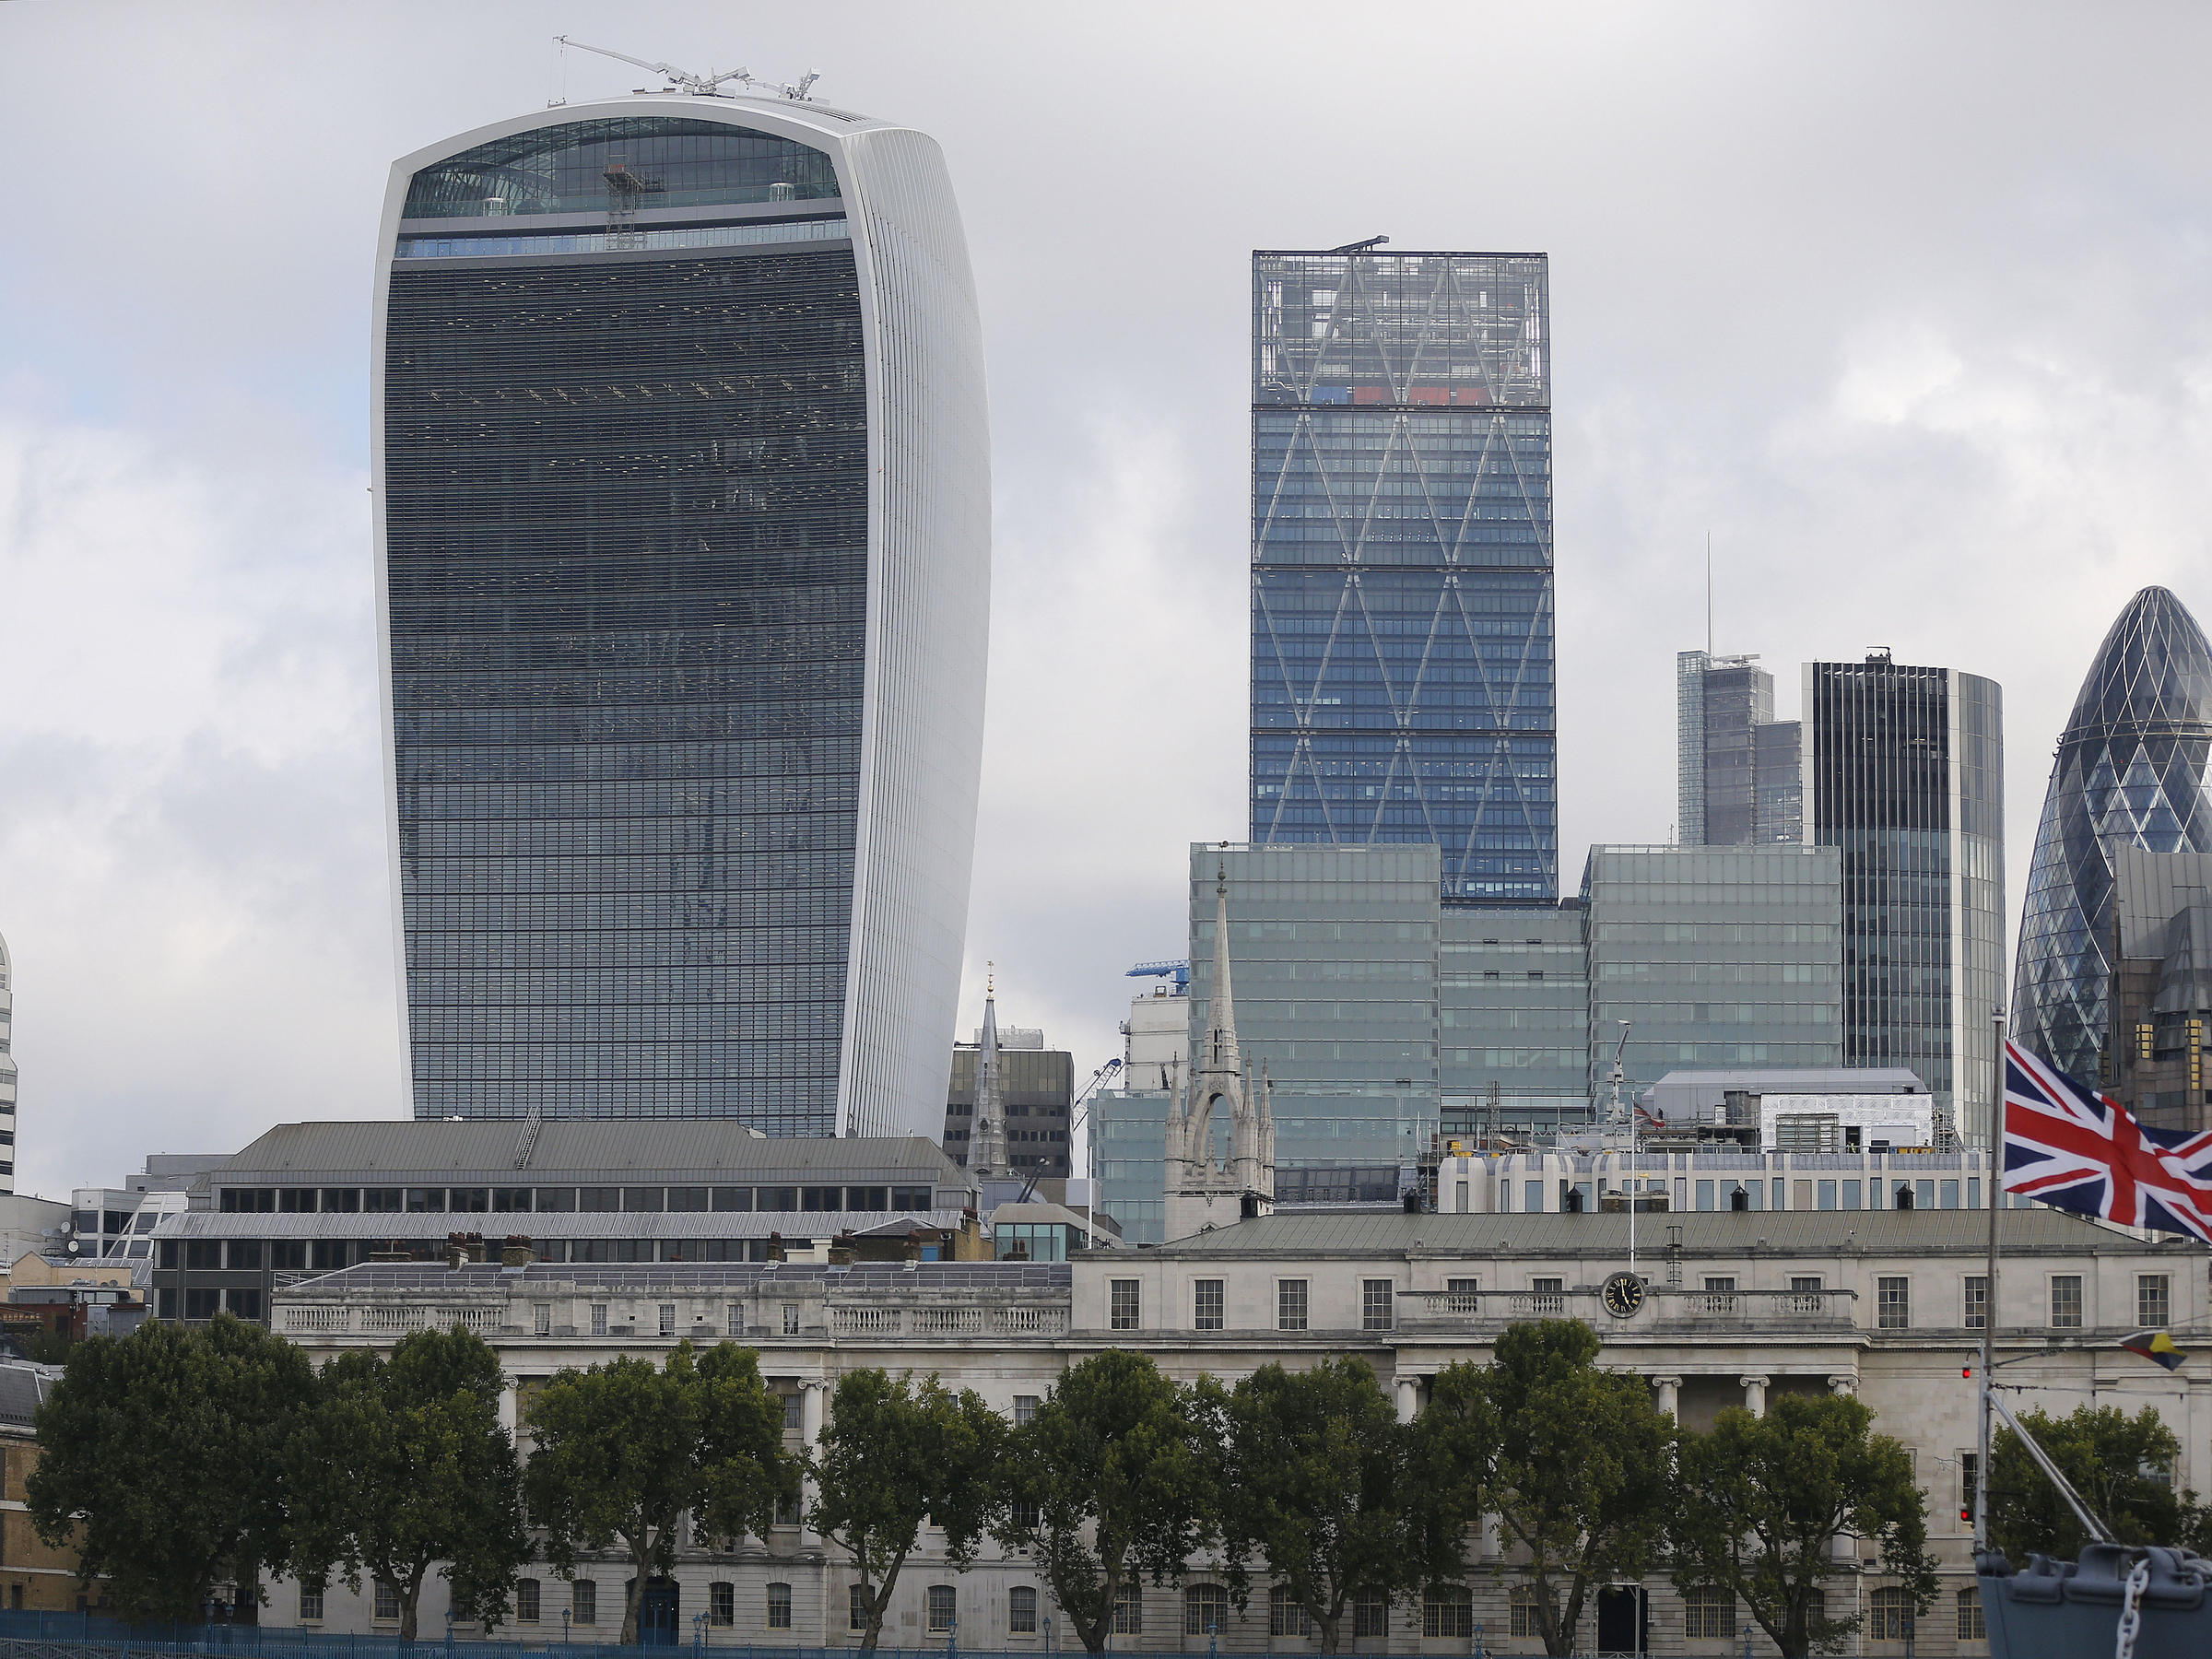 39 walkie talkie 39 tower roasts competition for uk 39 s worst building wpsu - Britains craziest sheds competition ...